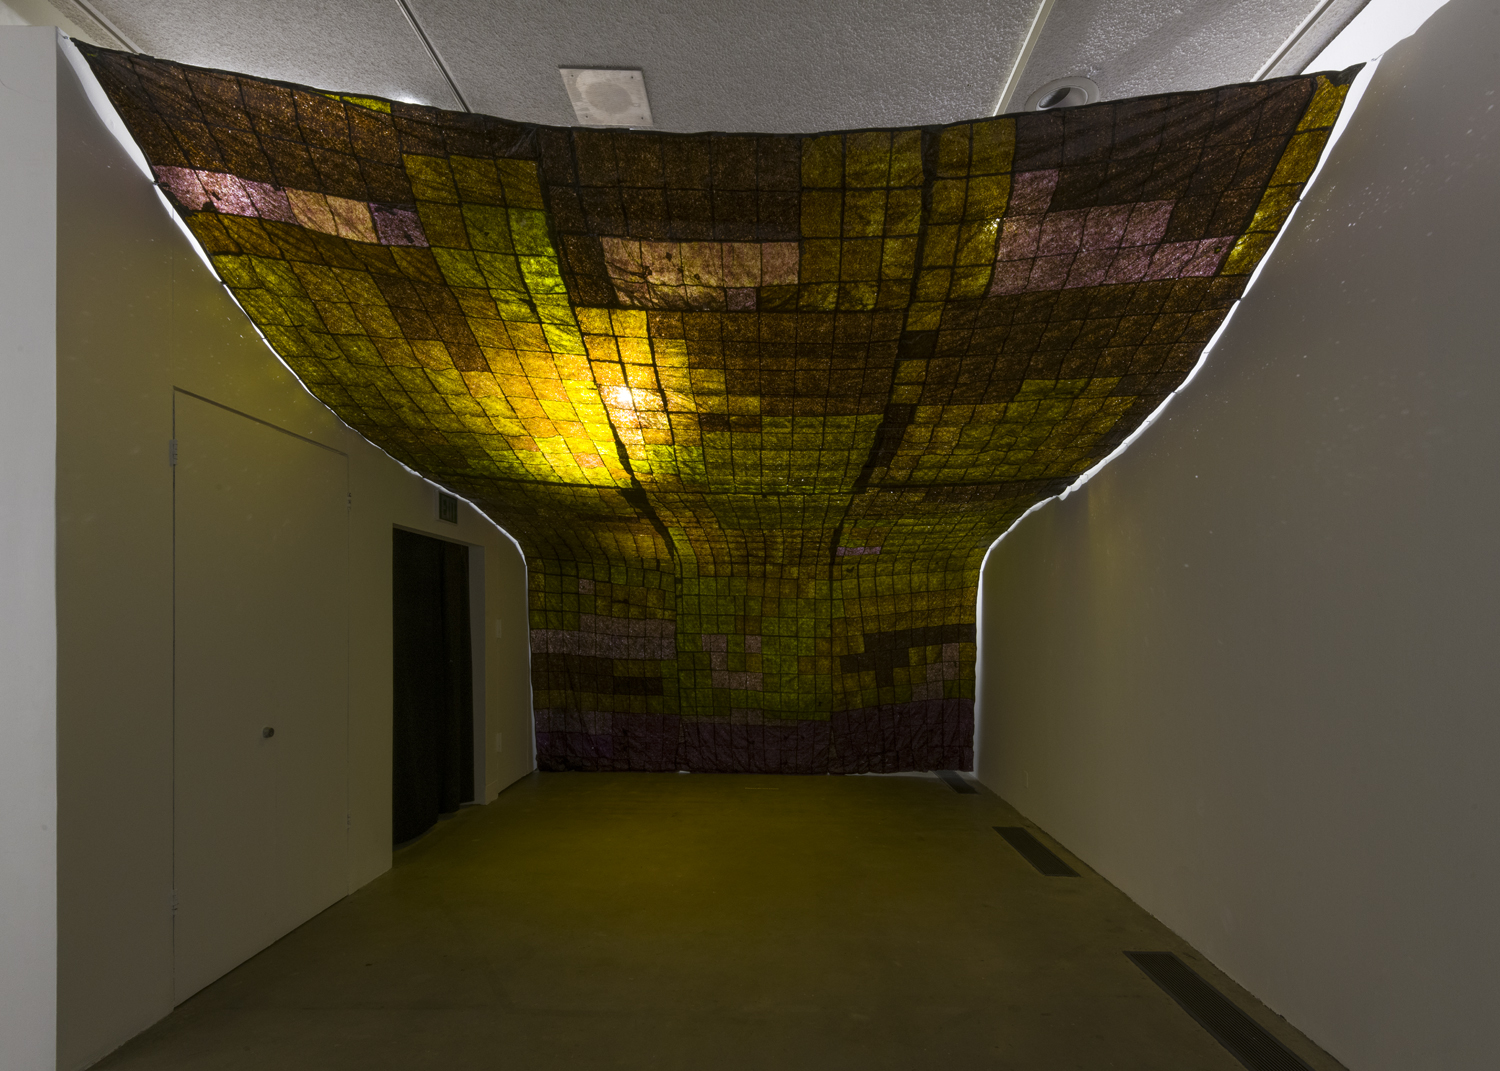 This artwork installation by the artist Hannah Varamini is comprised of various colored seaweed squares stitched together to form a canopy. The canopy covers the ceiling and the far back wall of the room.